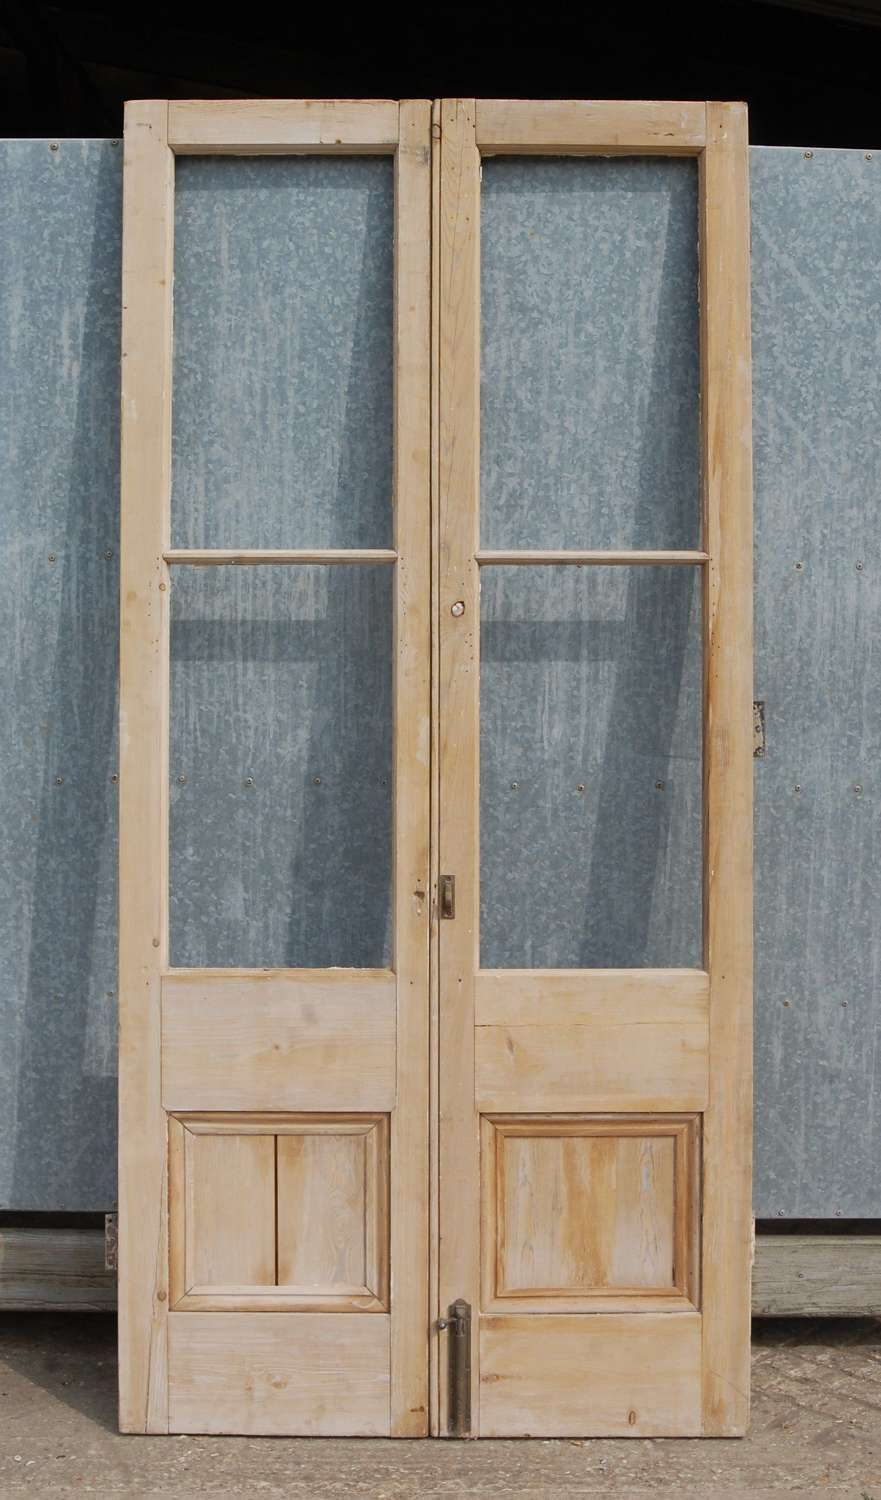 DP0294 A PAIR OF PERIOD RECLAIMED STRIPPED PINE INTERNAL DOORS